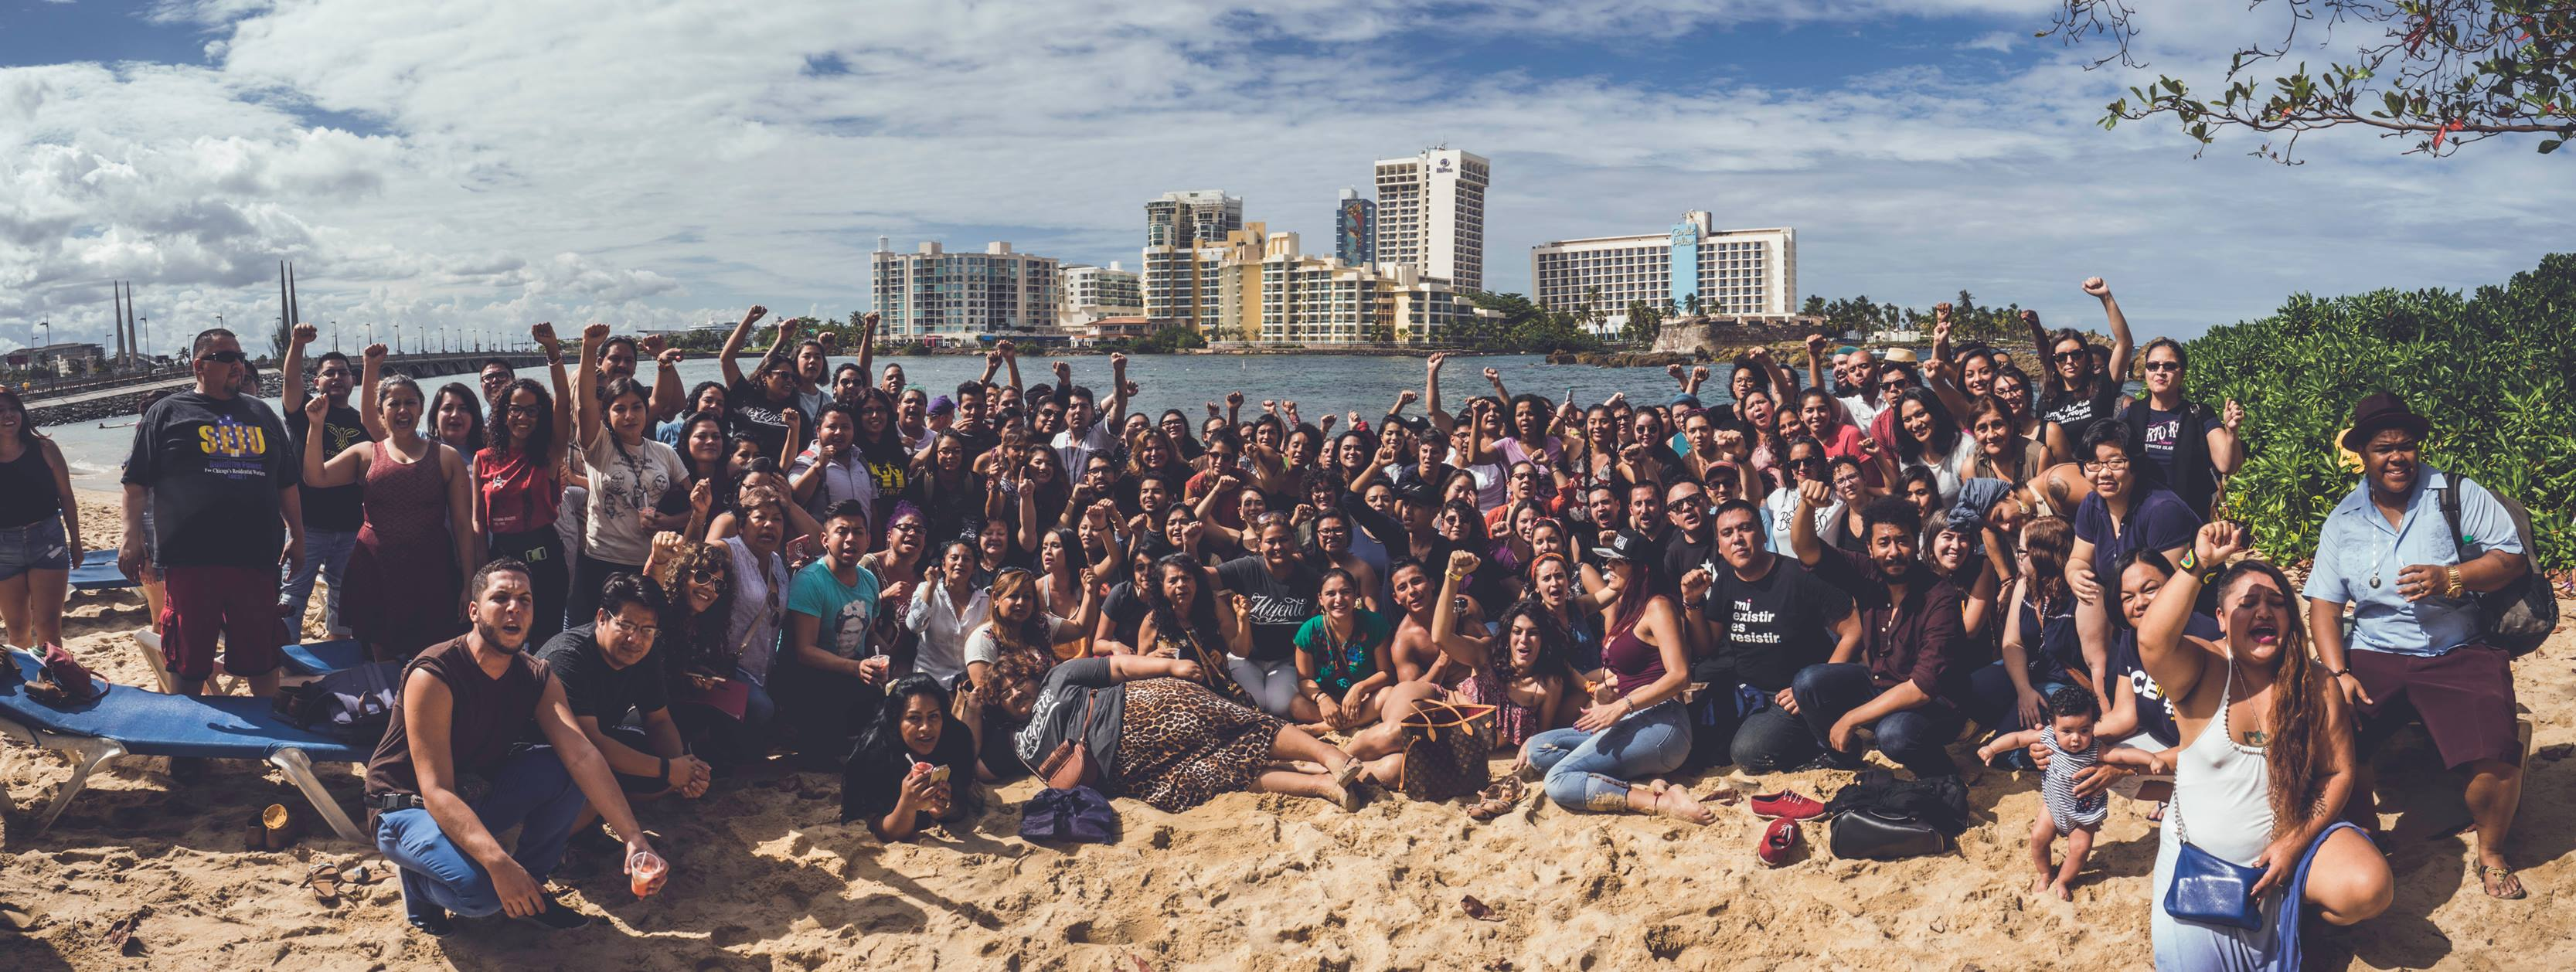 Here's What We Learned at Lánzate, a Massive Gathering of Latino Organizers and Activists